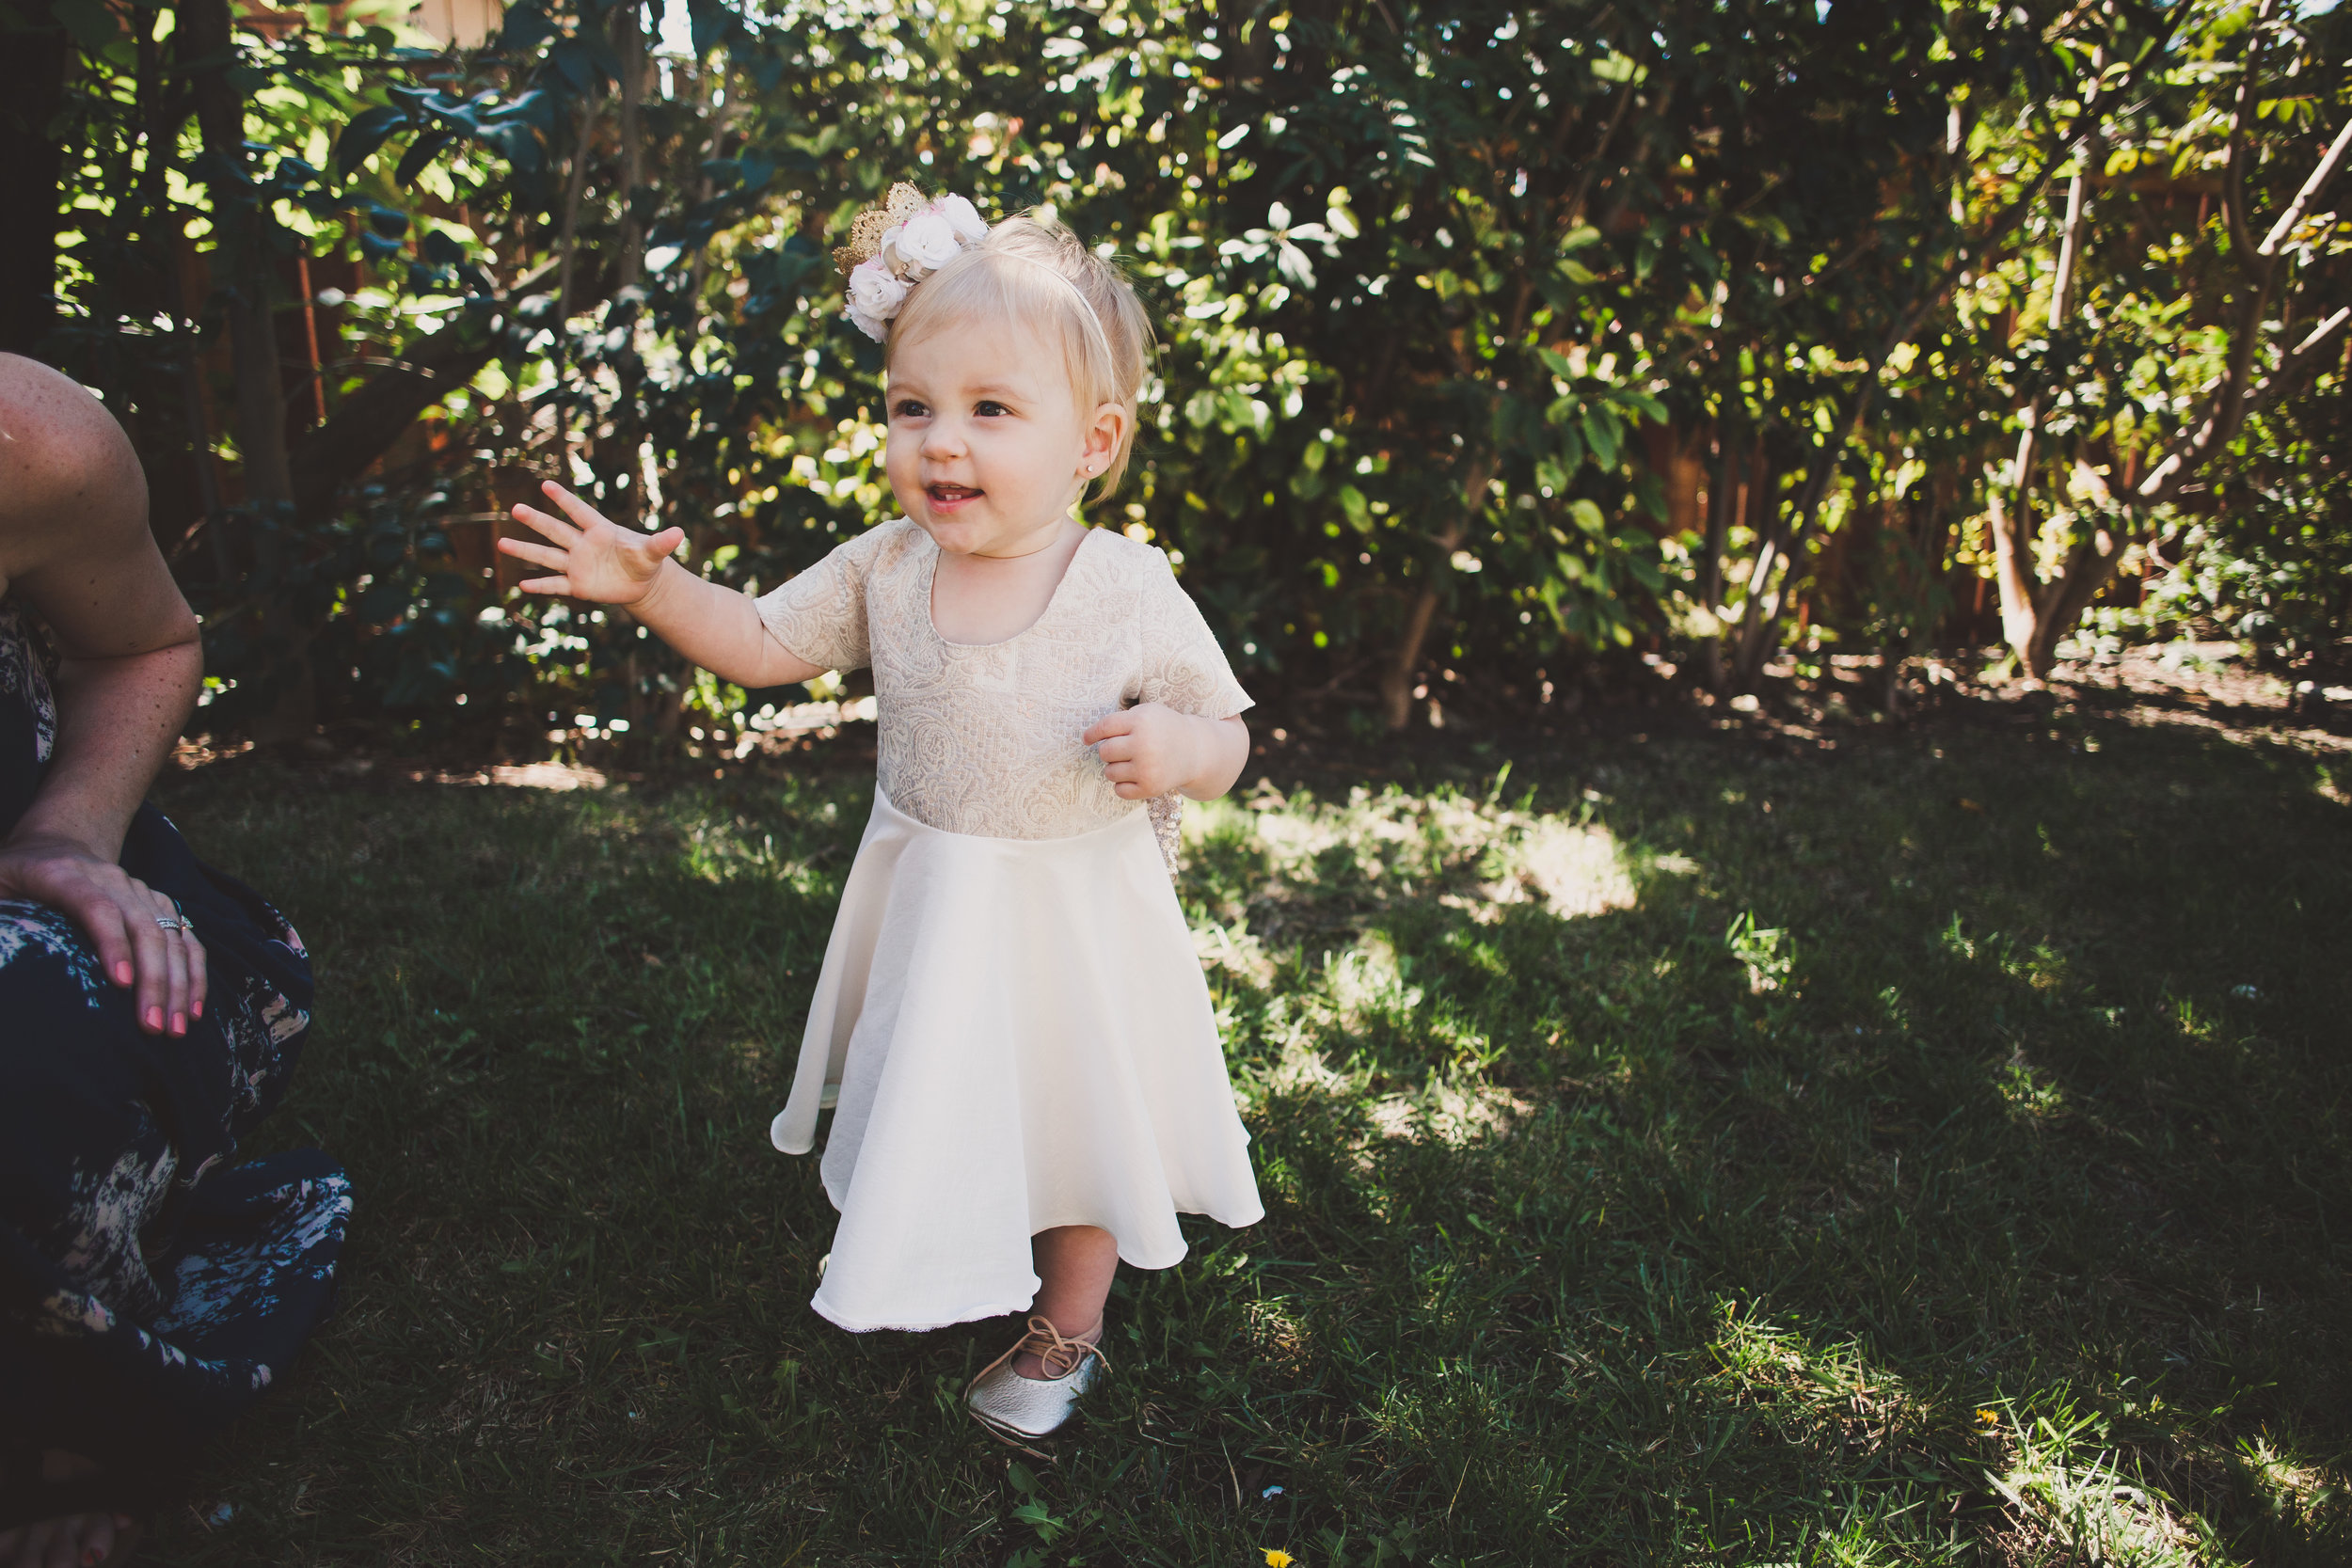 First Birthday Dress - First Birthday Party Ideas - A Vintage Chic Pi Day Themed 1st Birthday Party   Ava's First Birthday